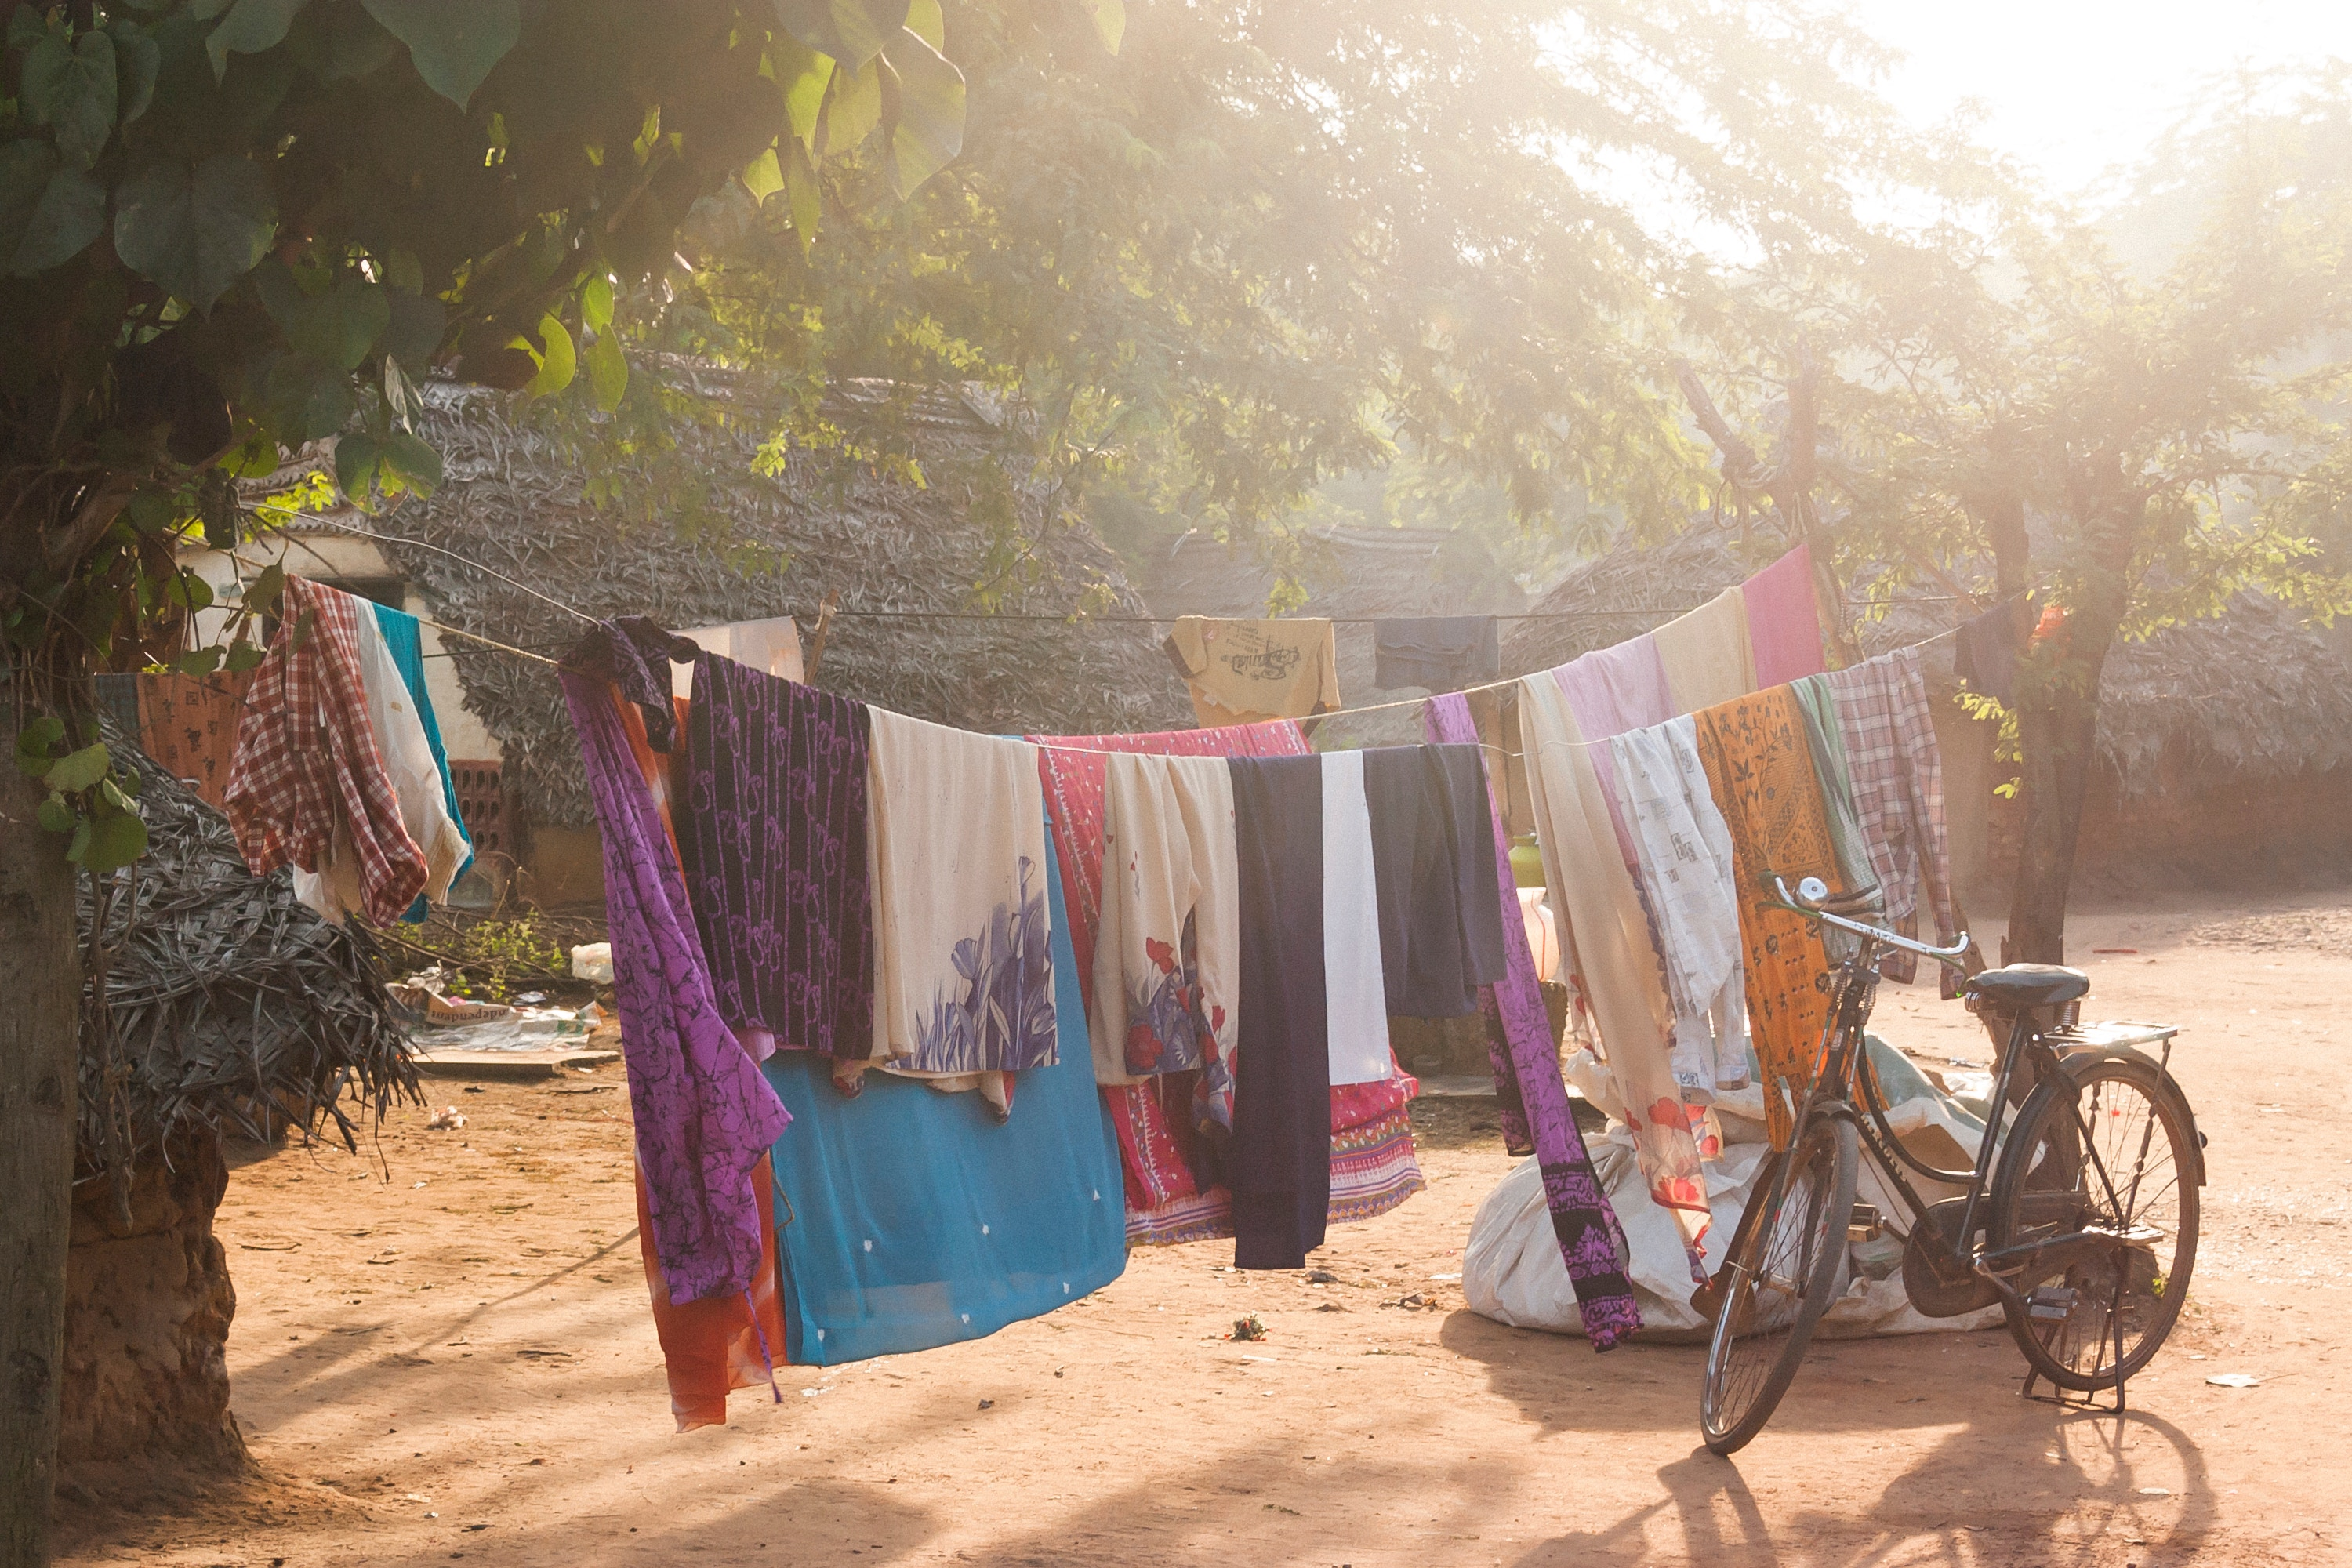 Clothes hanging to dry in a sunset